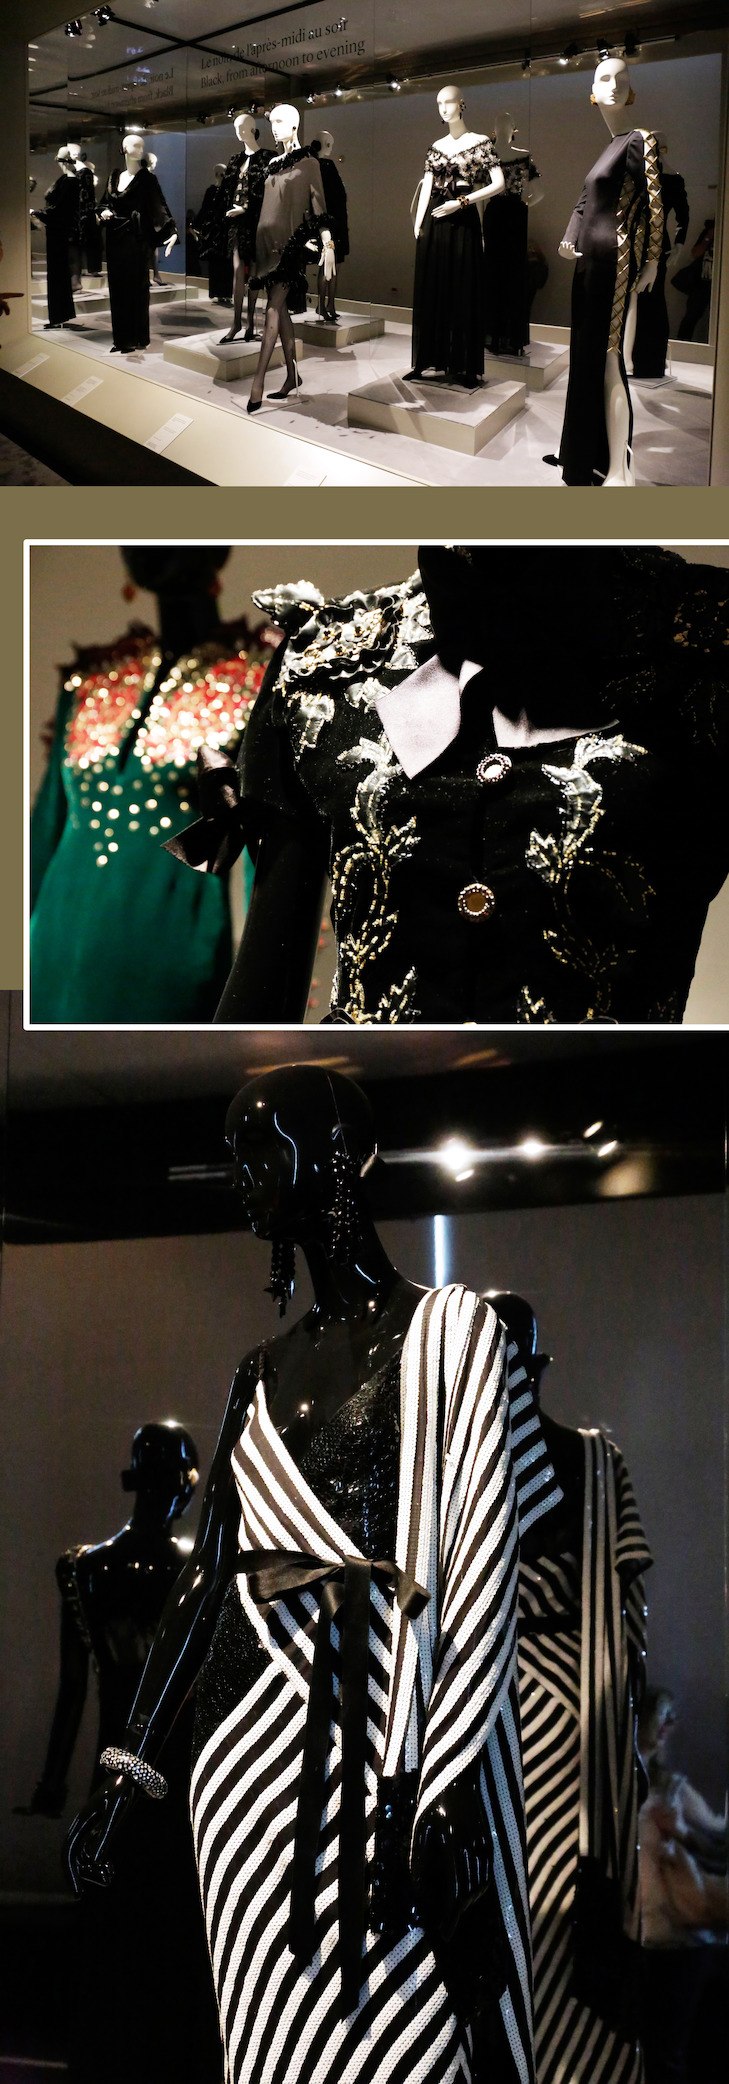 Hubert-de-Givenchy-exhibition-calais-cité-de-la-dentelle-et-de-la-mode-museum-of-lace-and-fashion